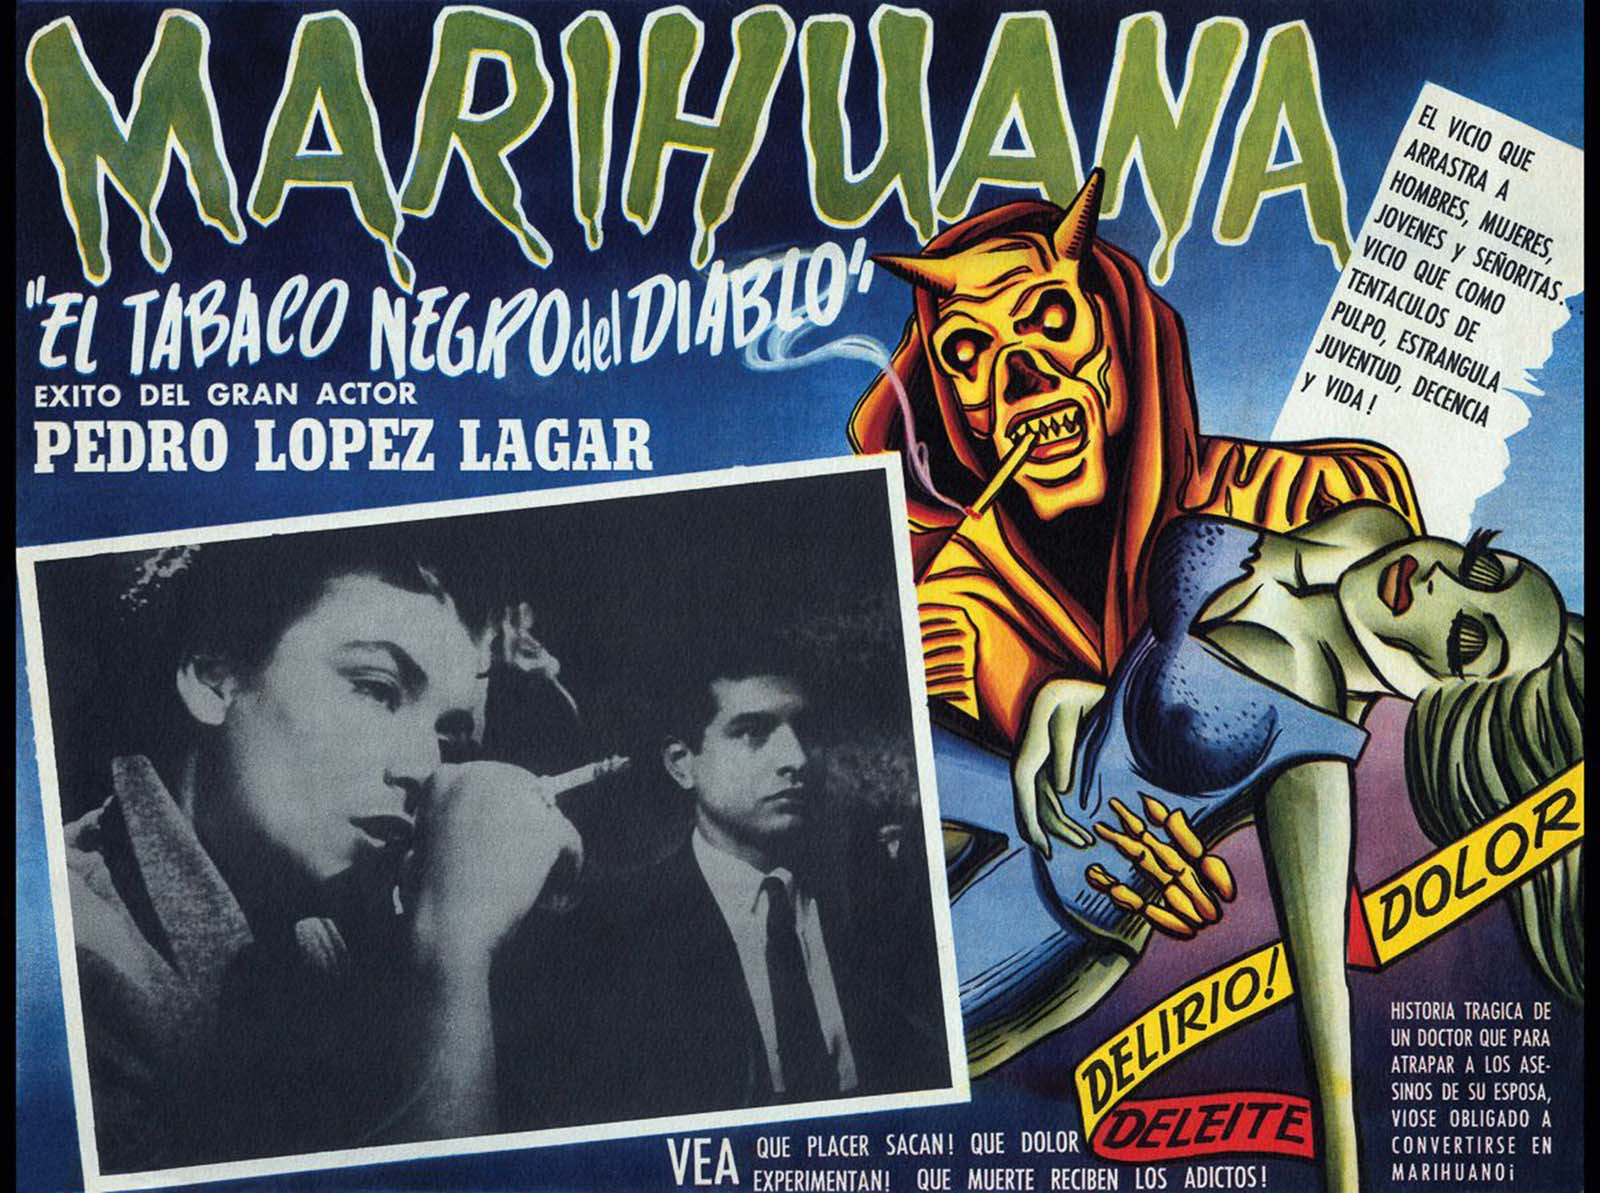 A poster for an Argentinian film about a respected surgeon whose wife dies of marijuana addiction. 1950.